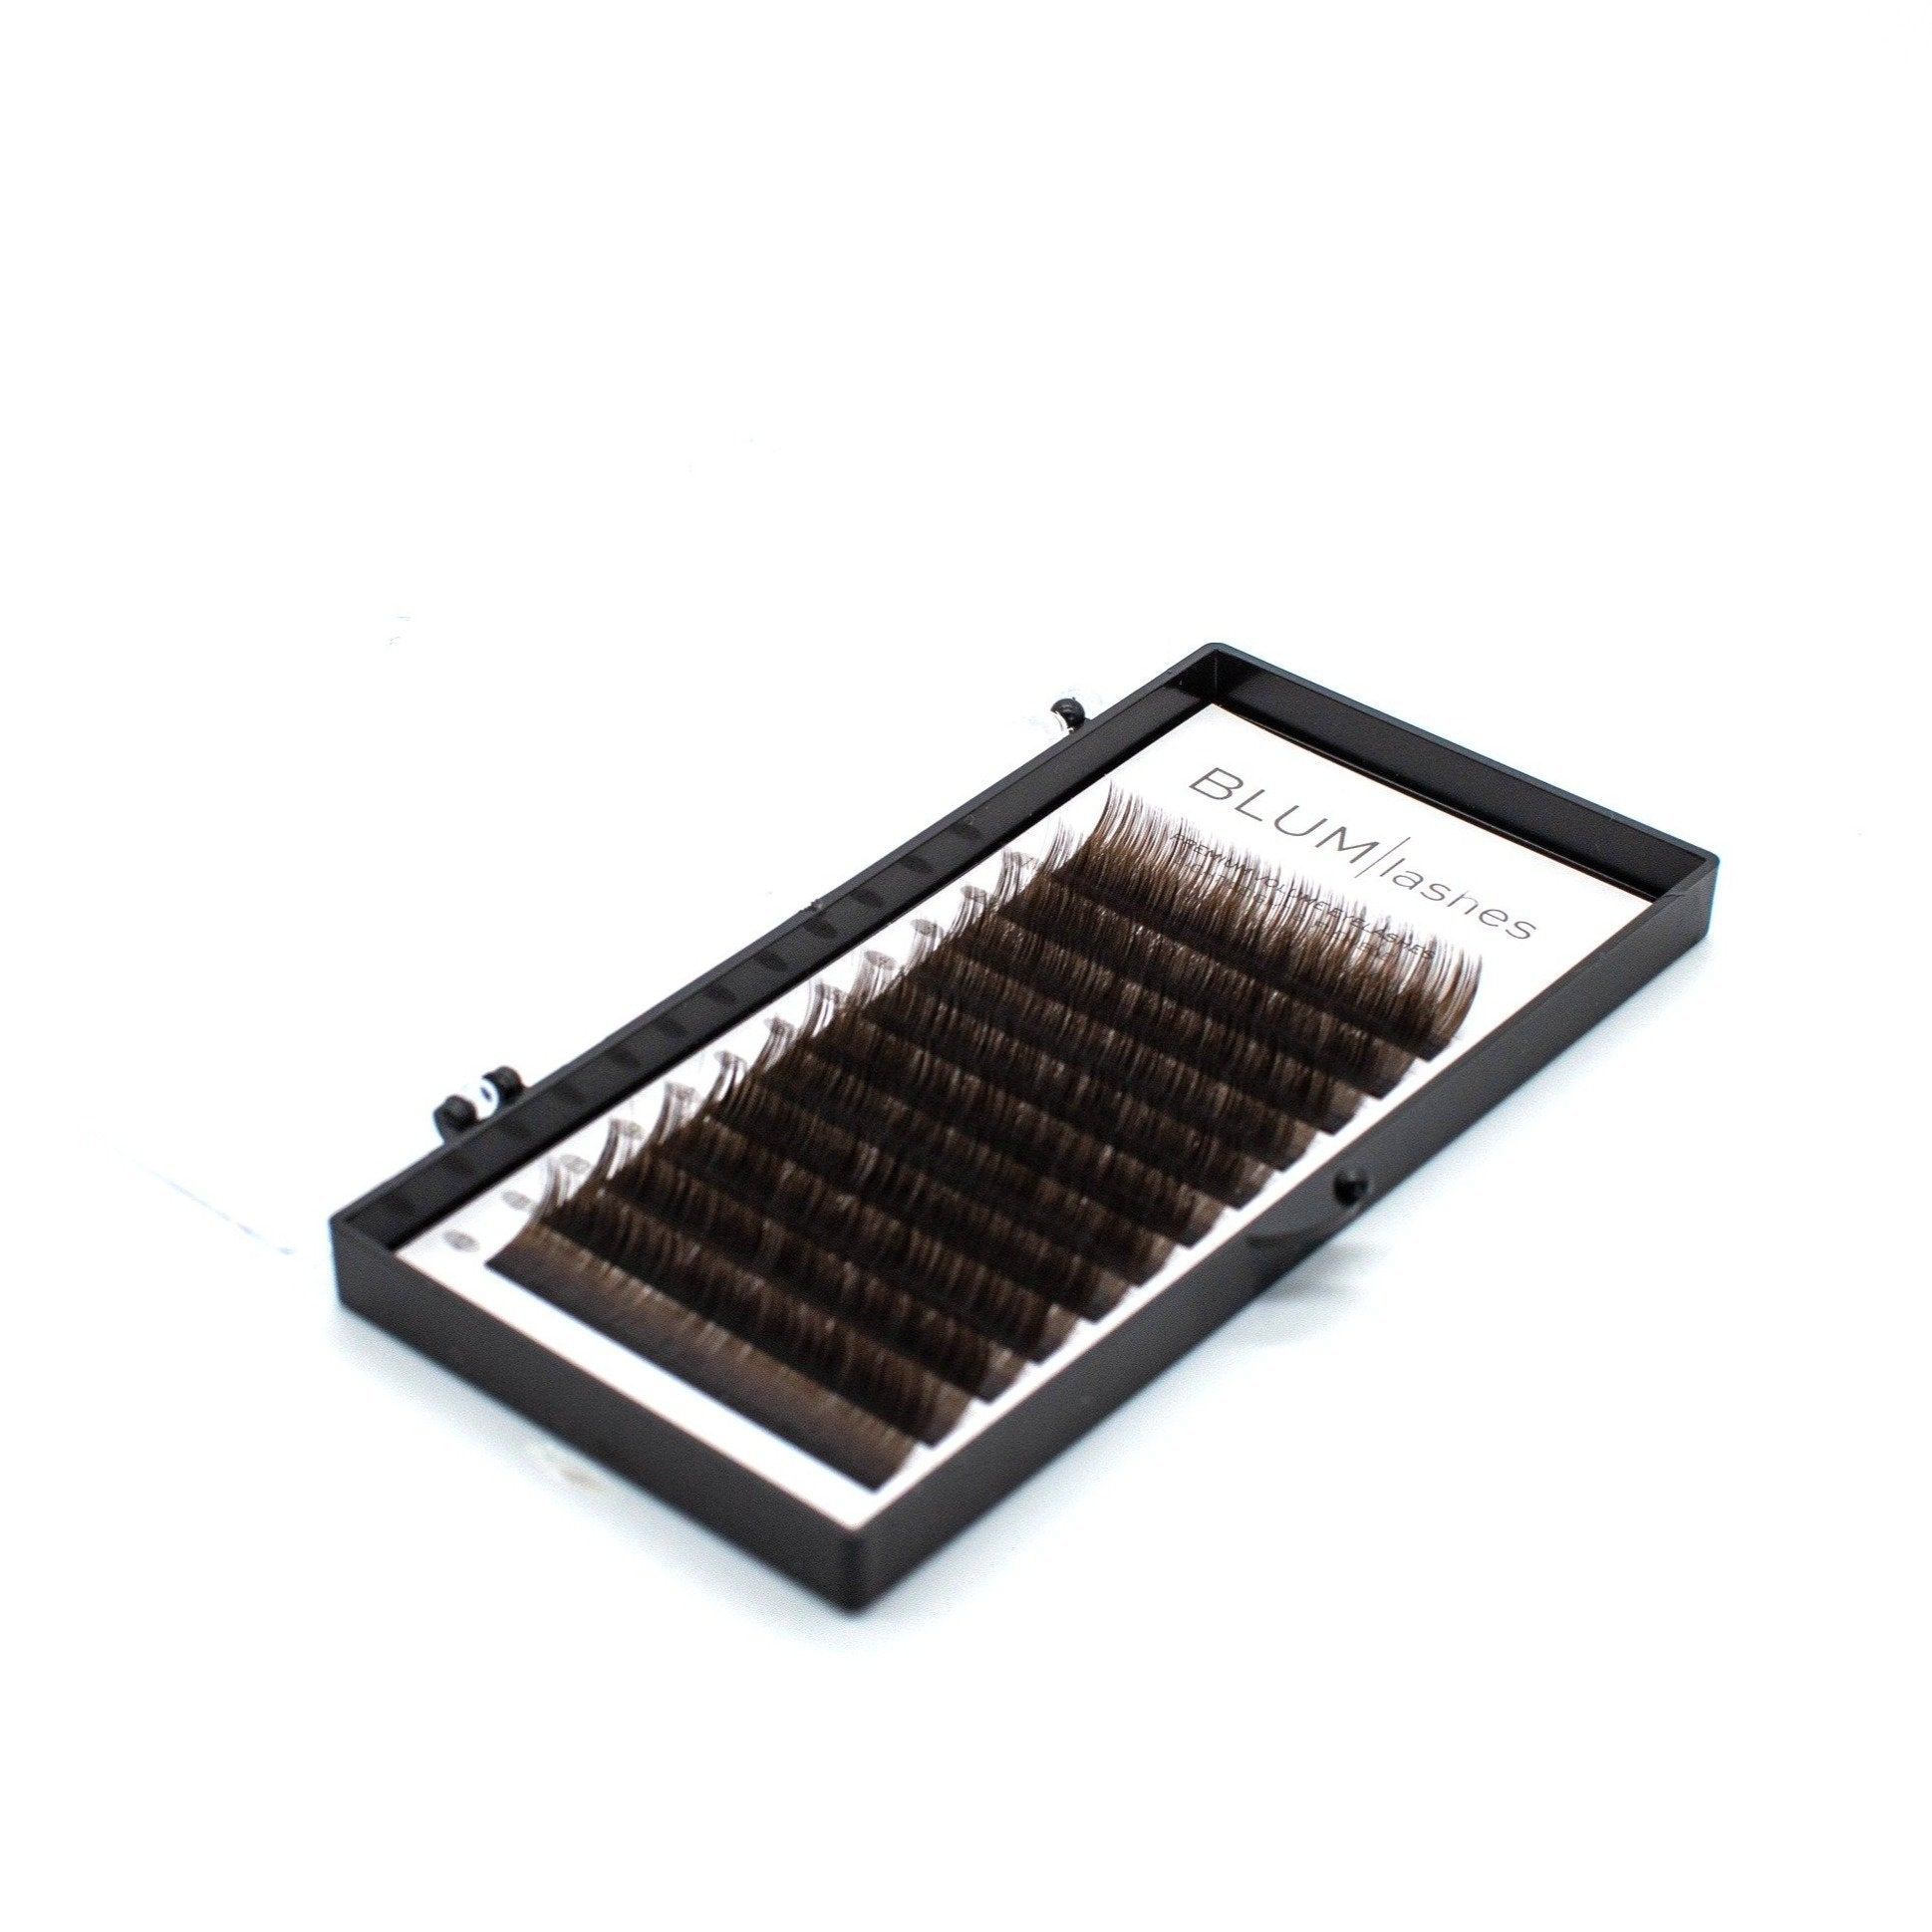 Blum Lashes Dark Brown 0,07 D-curl - Lash Look